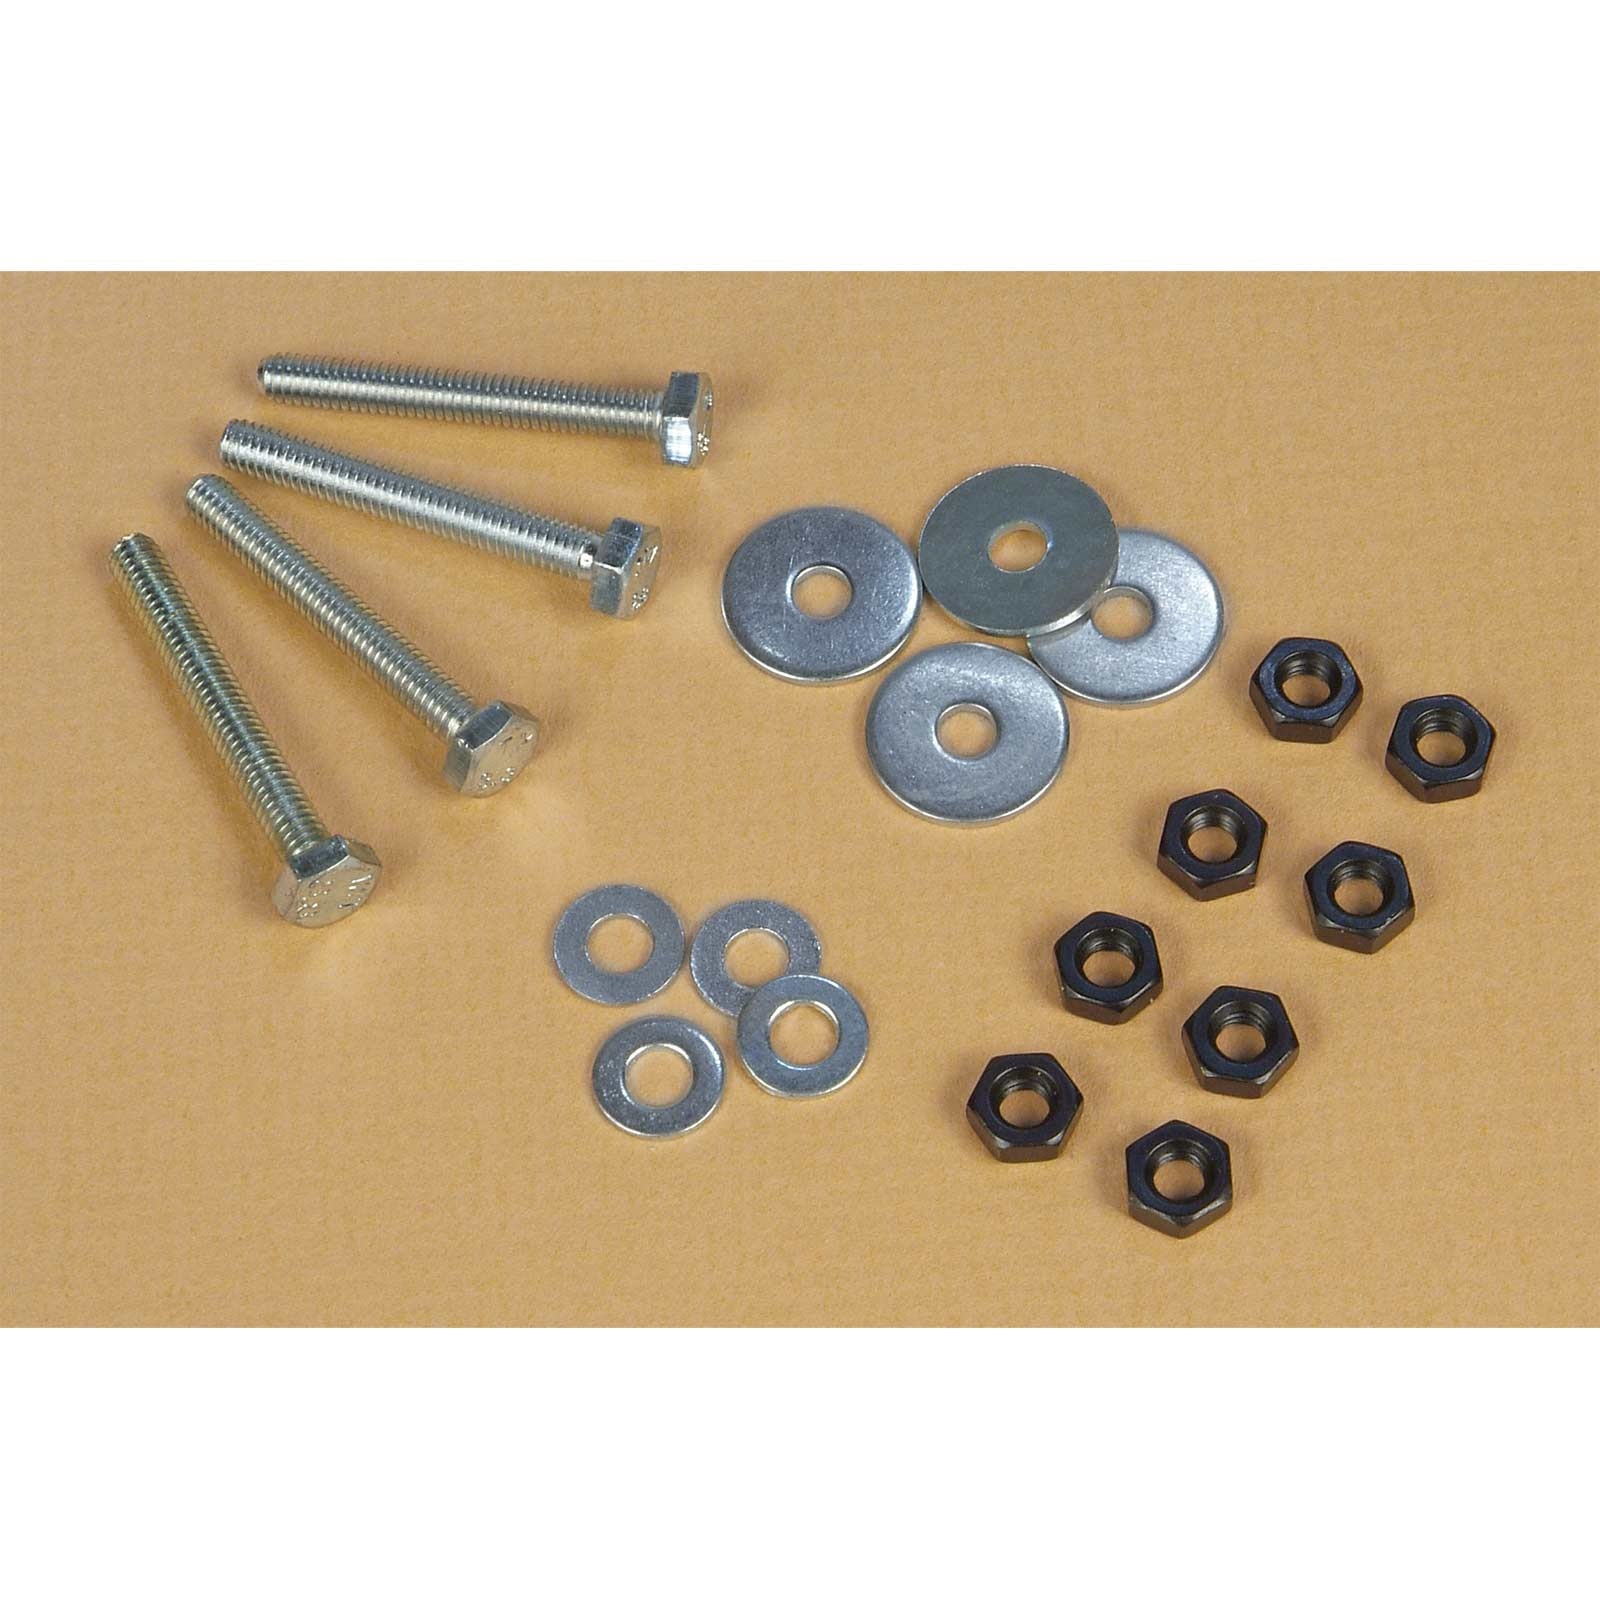 M4 Hardware Kit (20 Pieces)